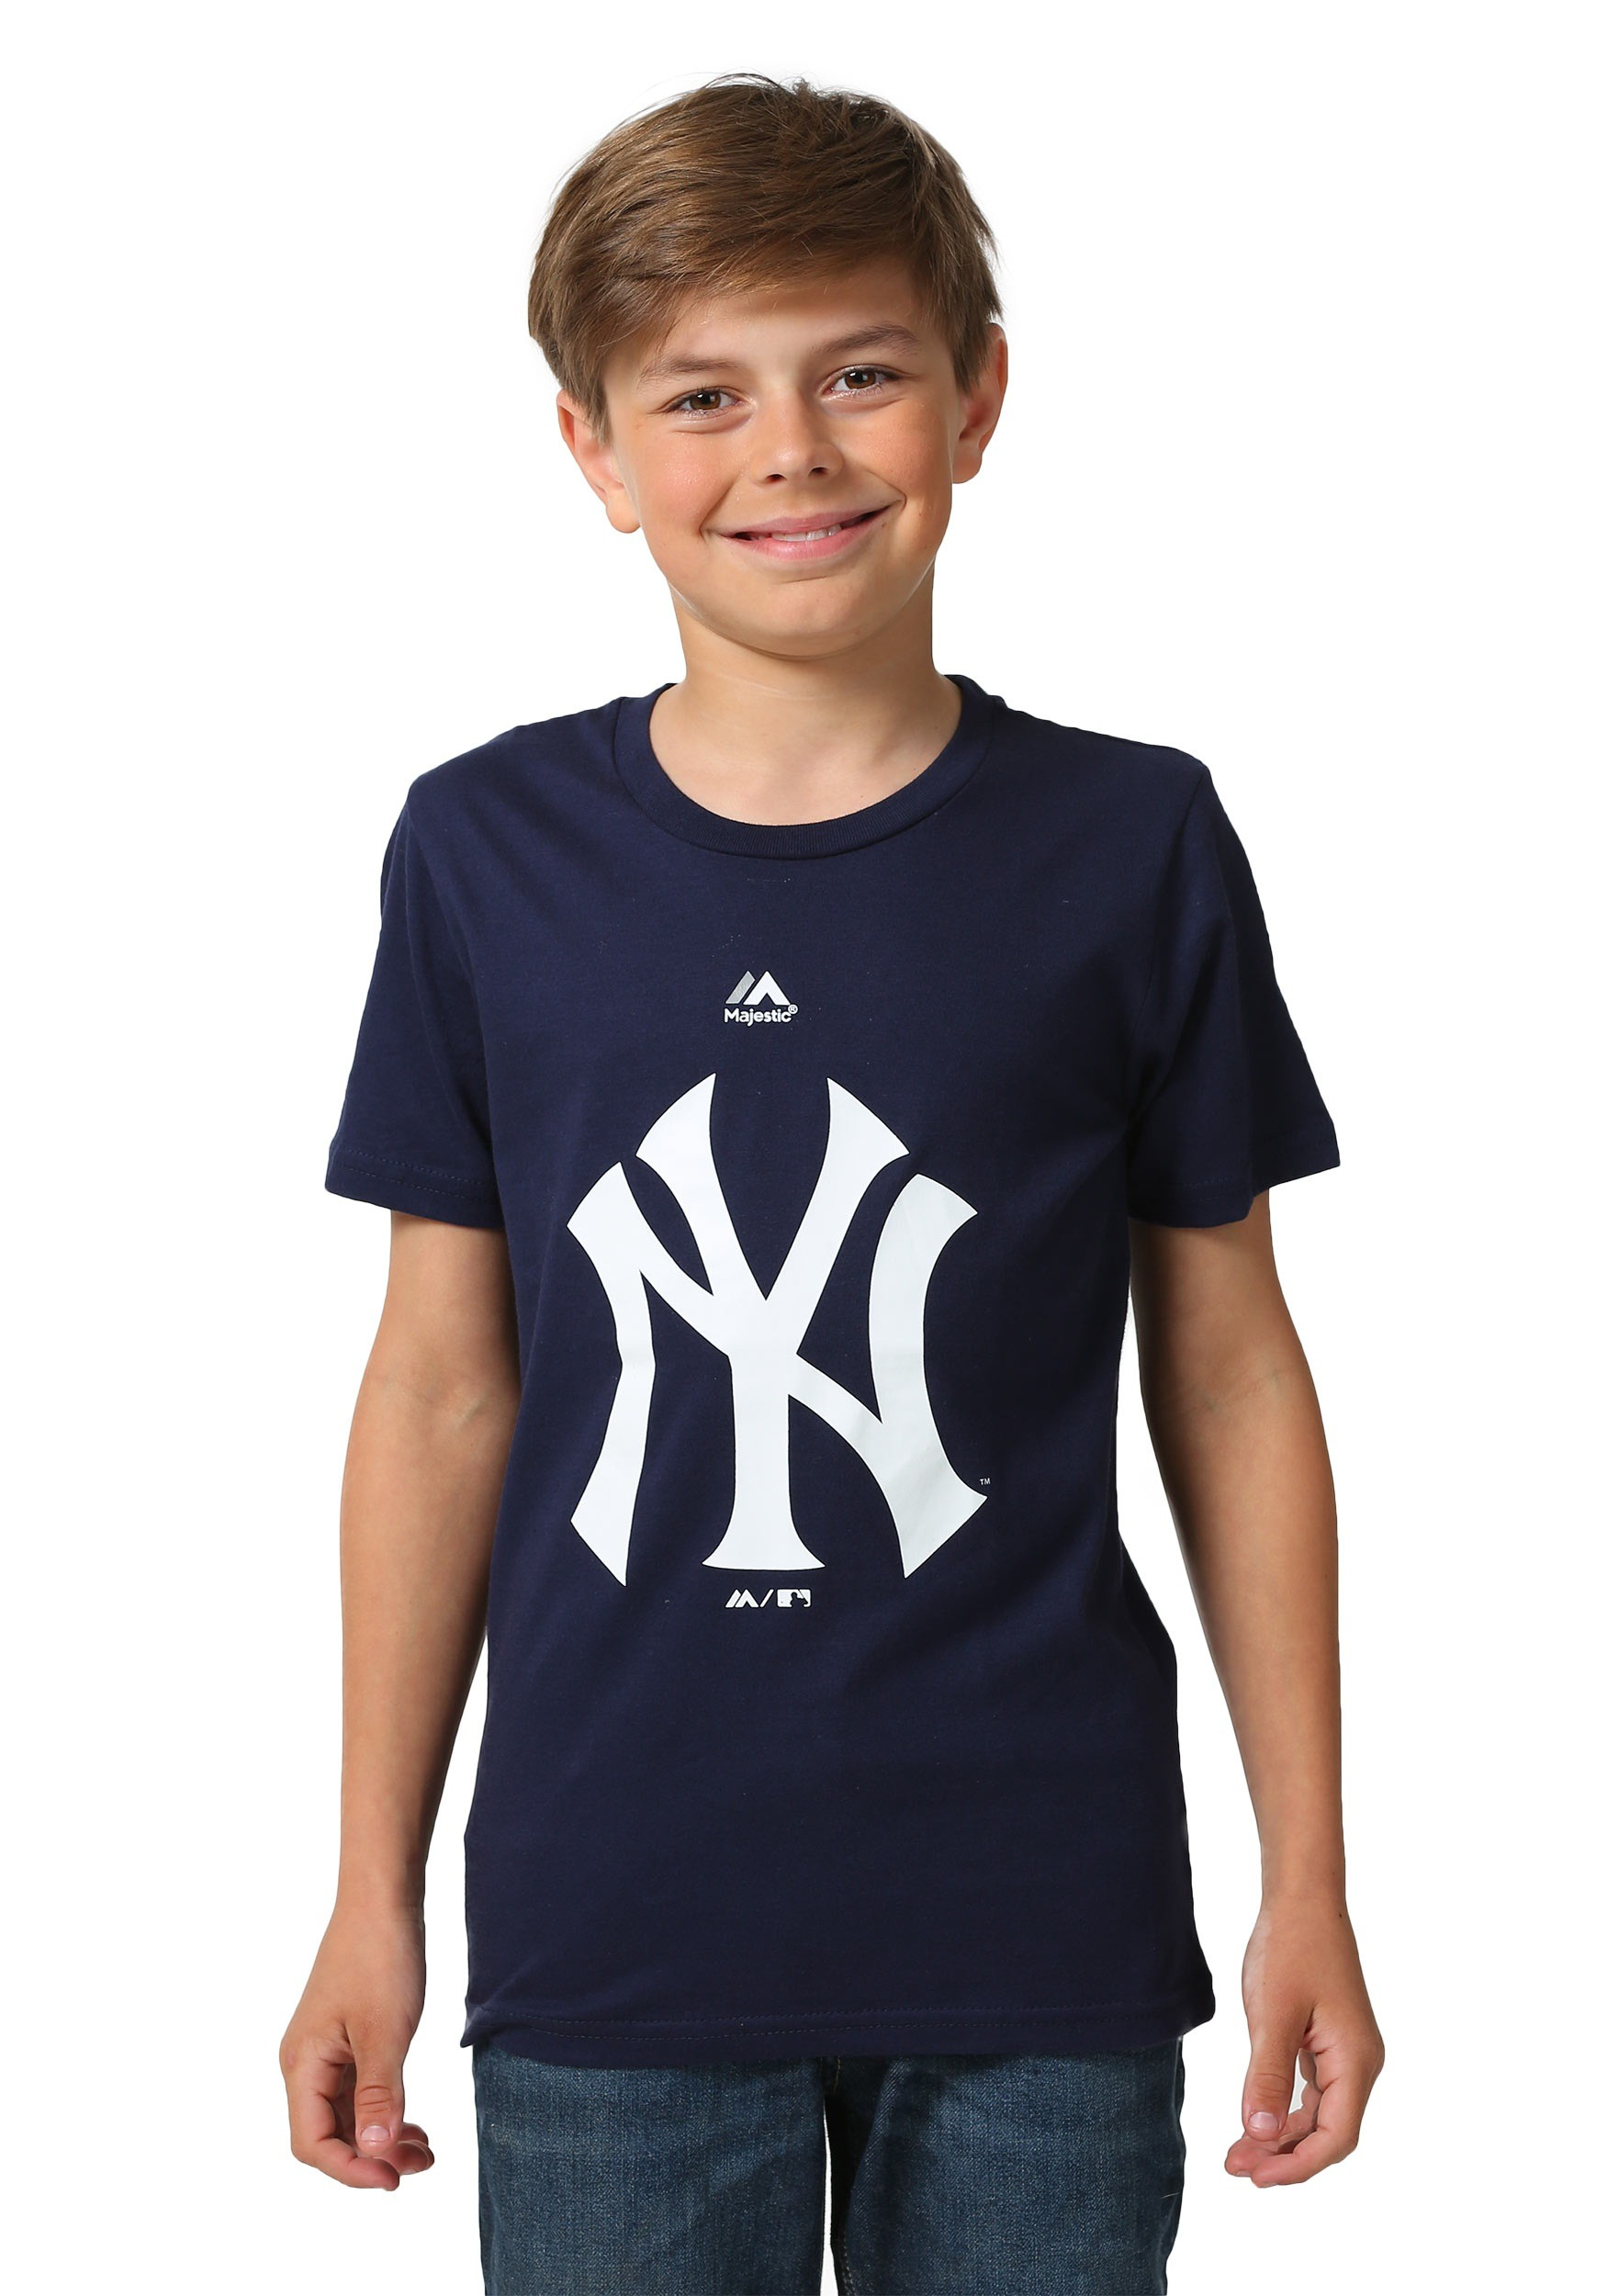 the latest 1abf4 a1597 New York Yankees Primary Logo Kids Shirt